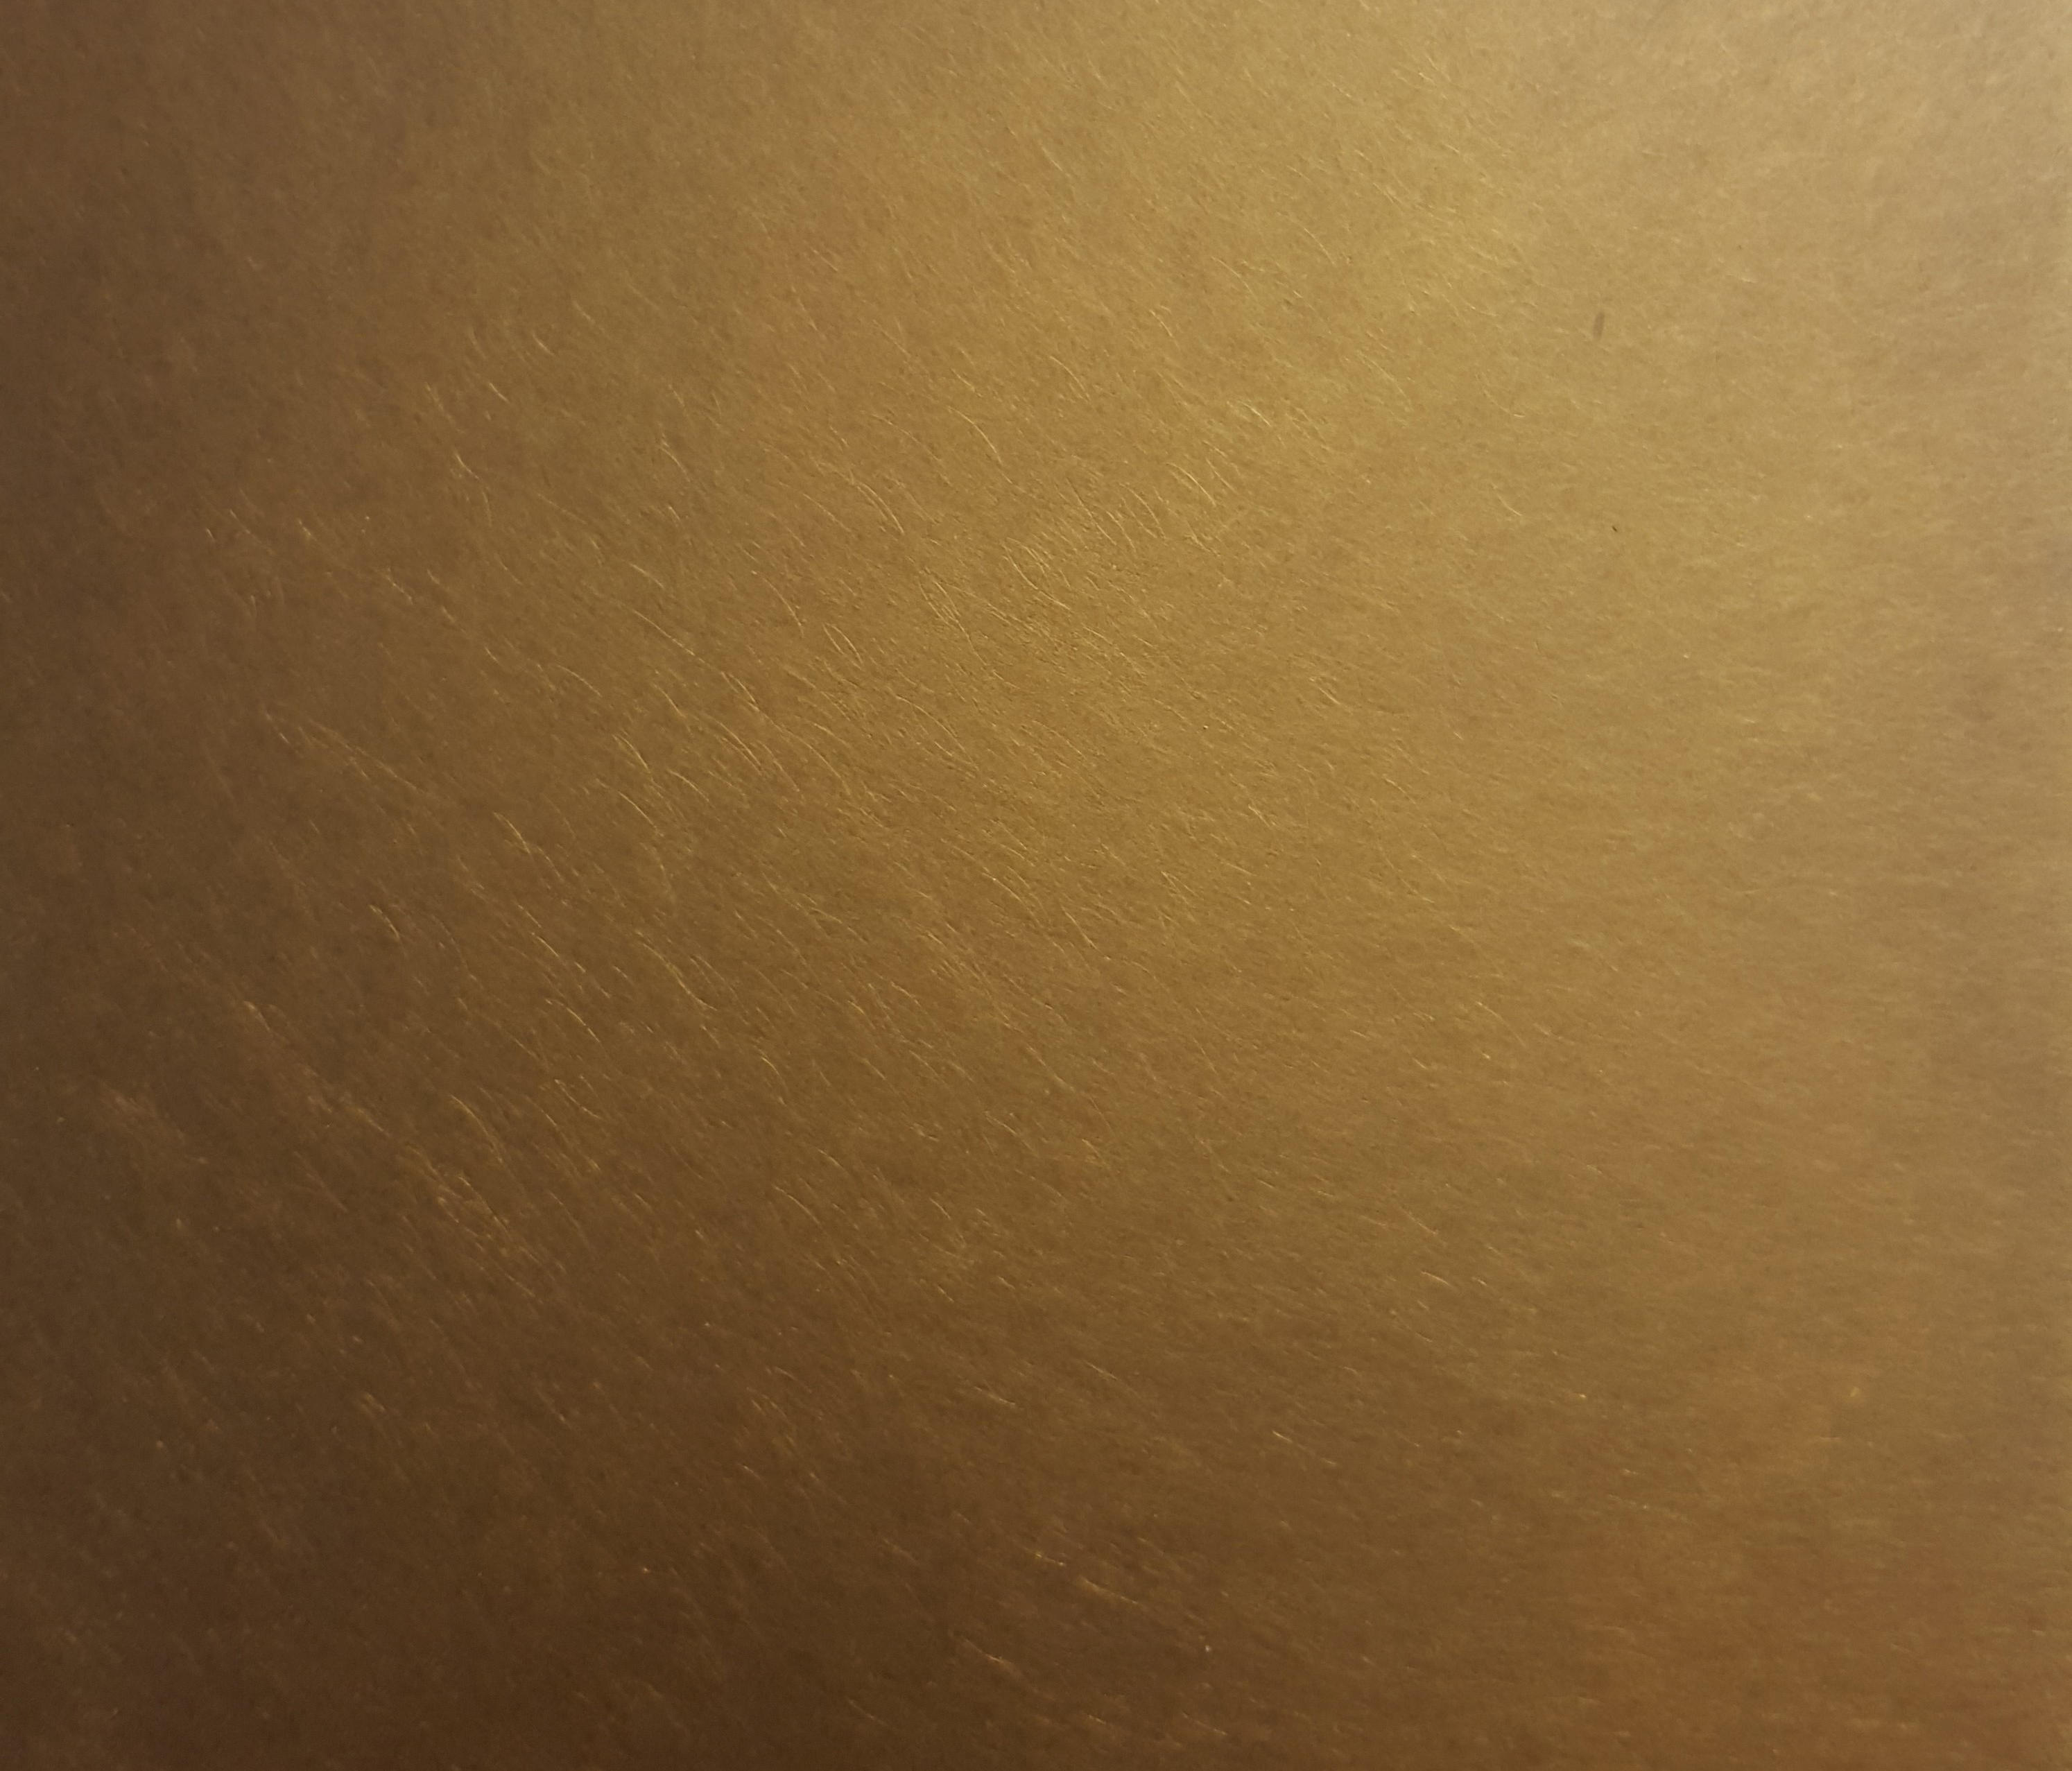 Finiture Burnished Brass Sheets From Ydf Architonic